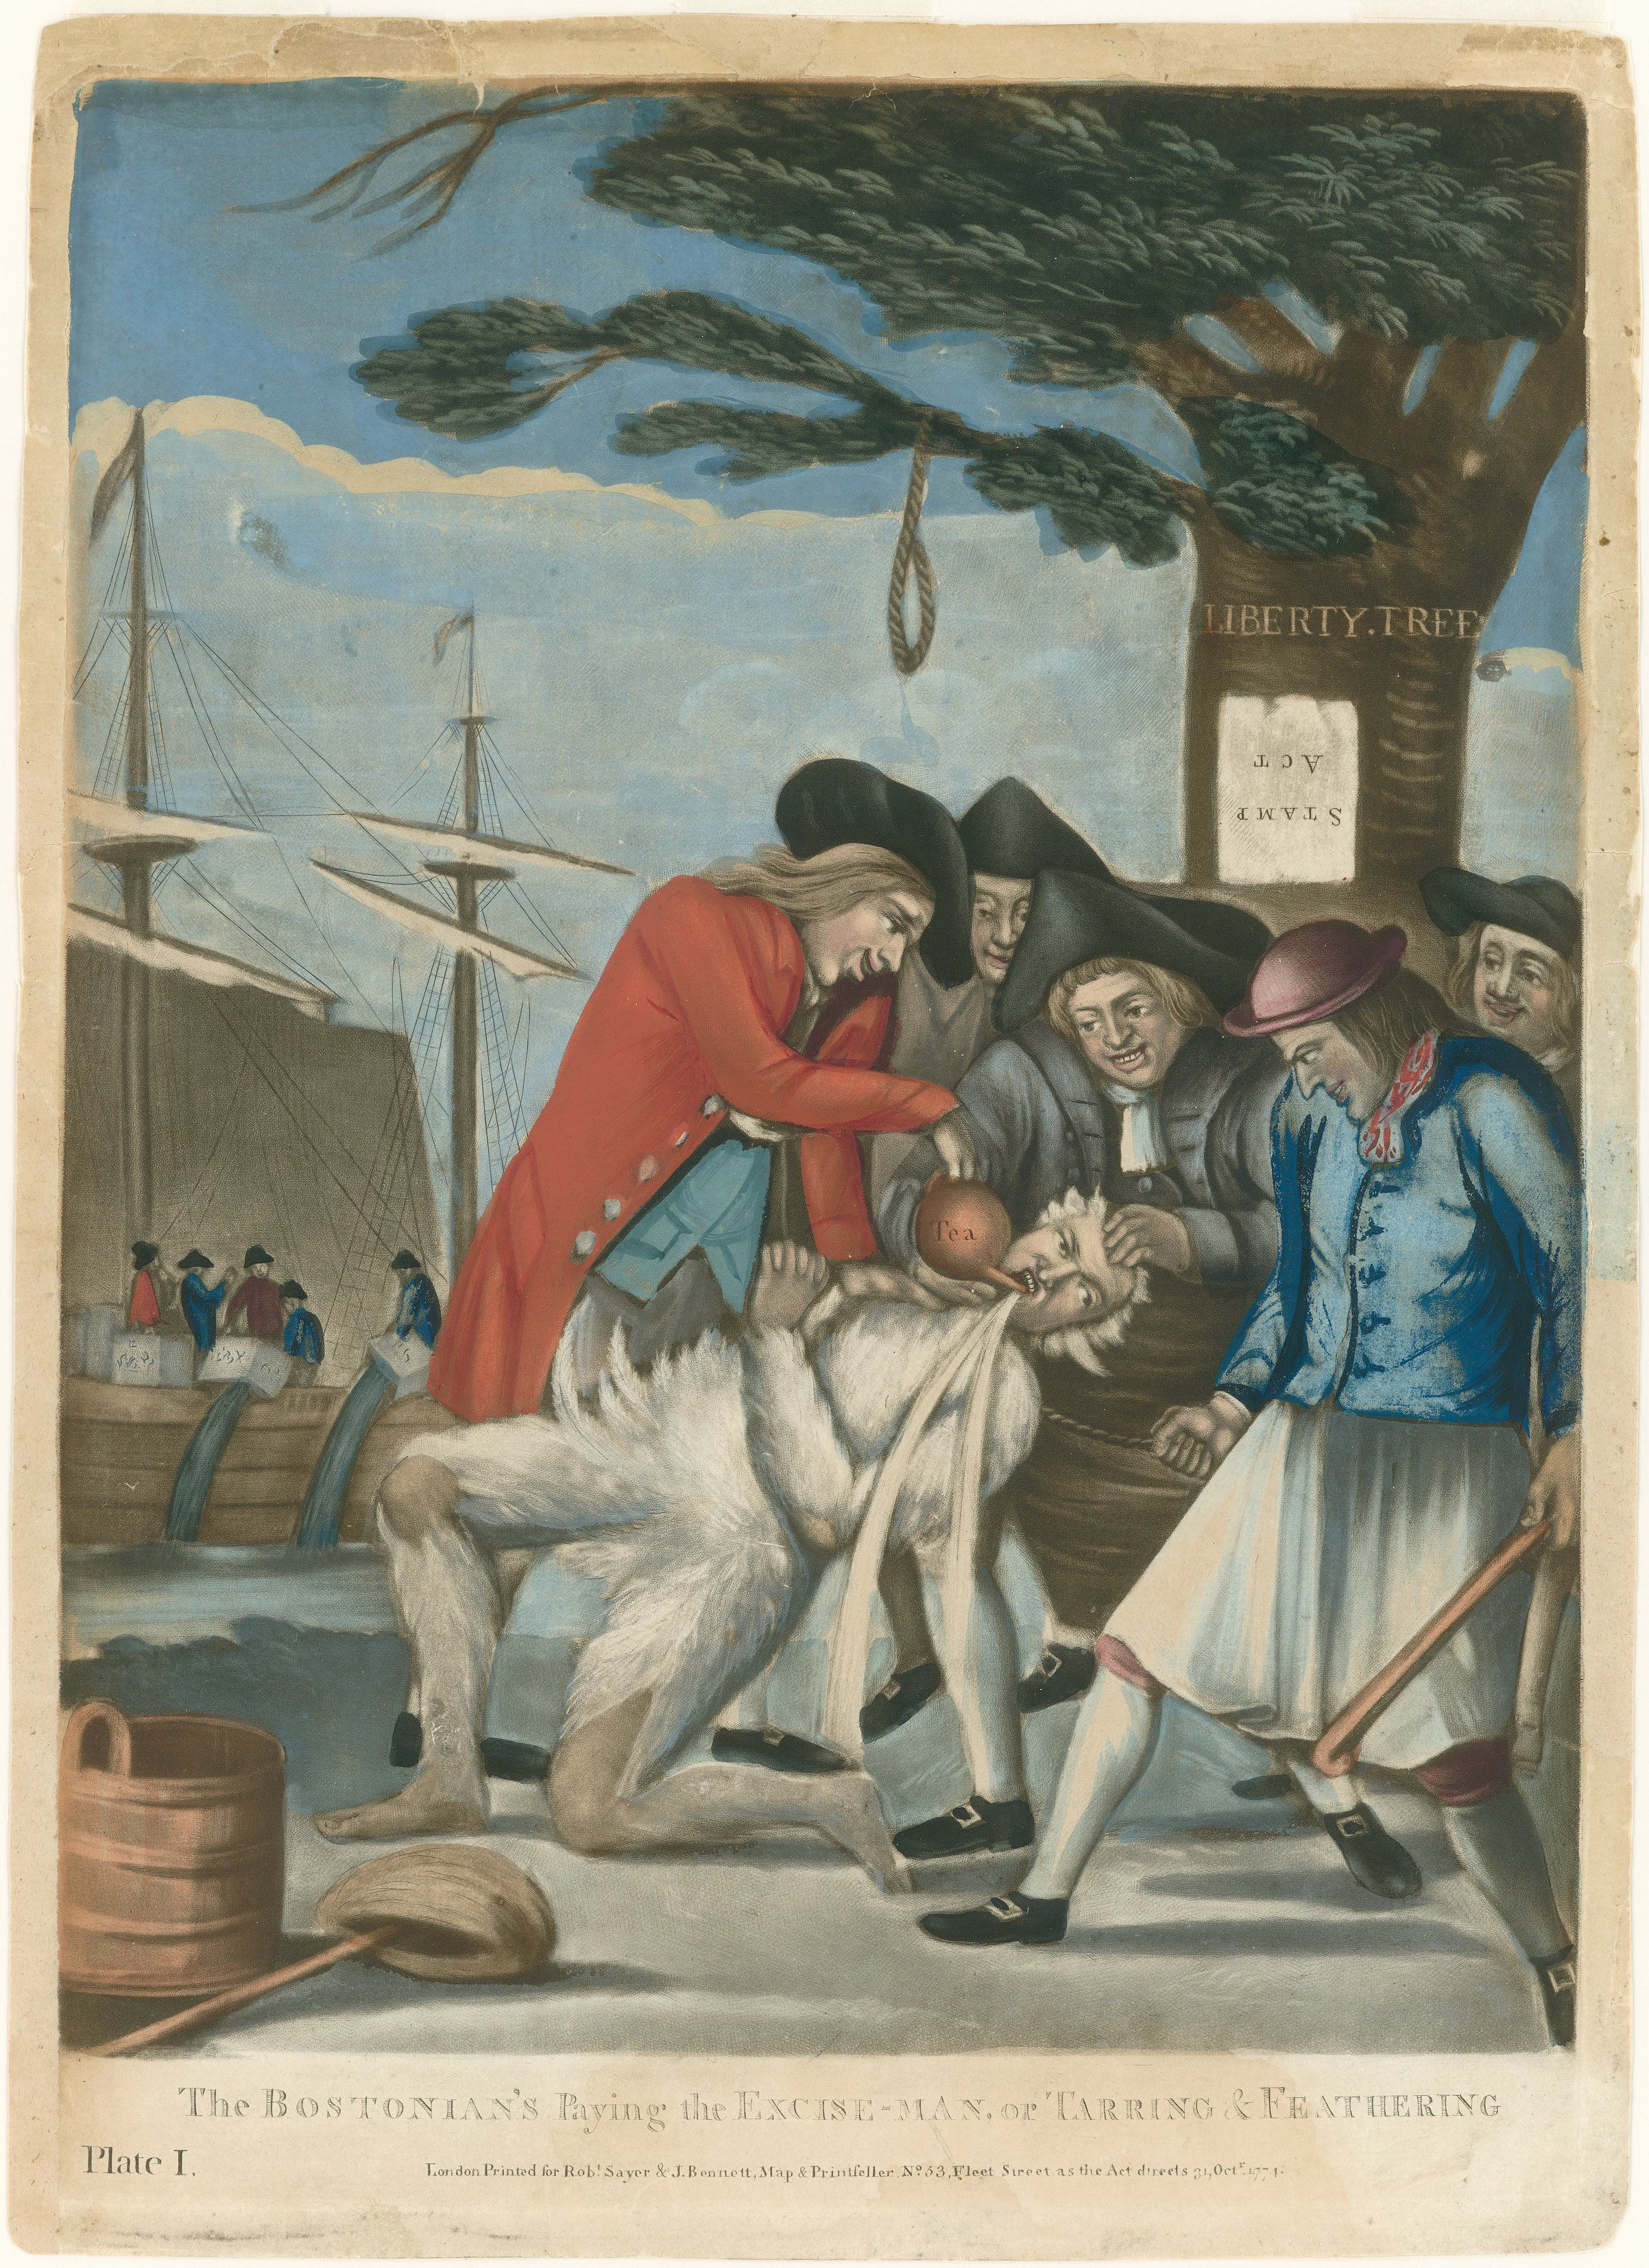 The Bostonians Paying the Excise-man, or Tarri...